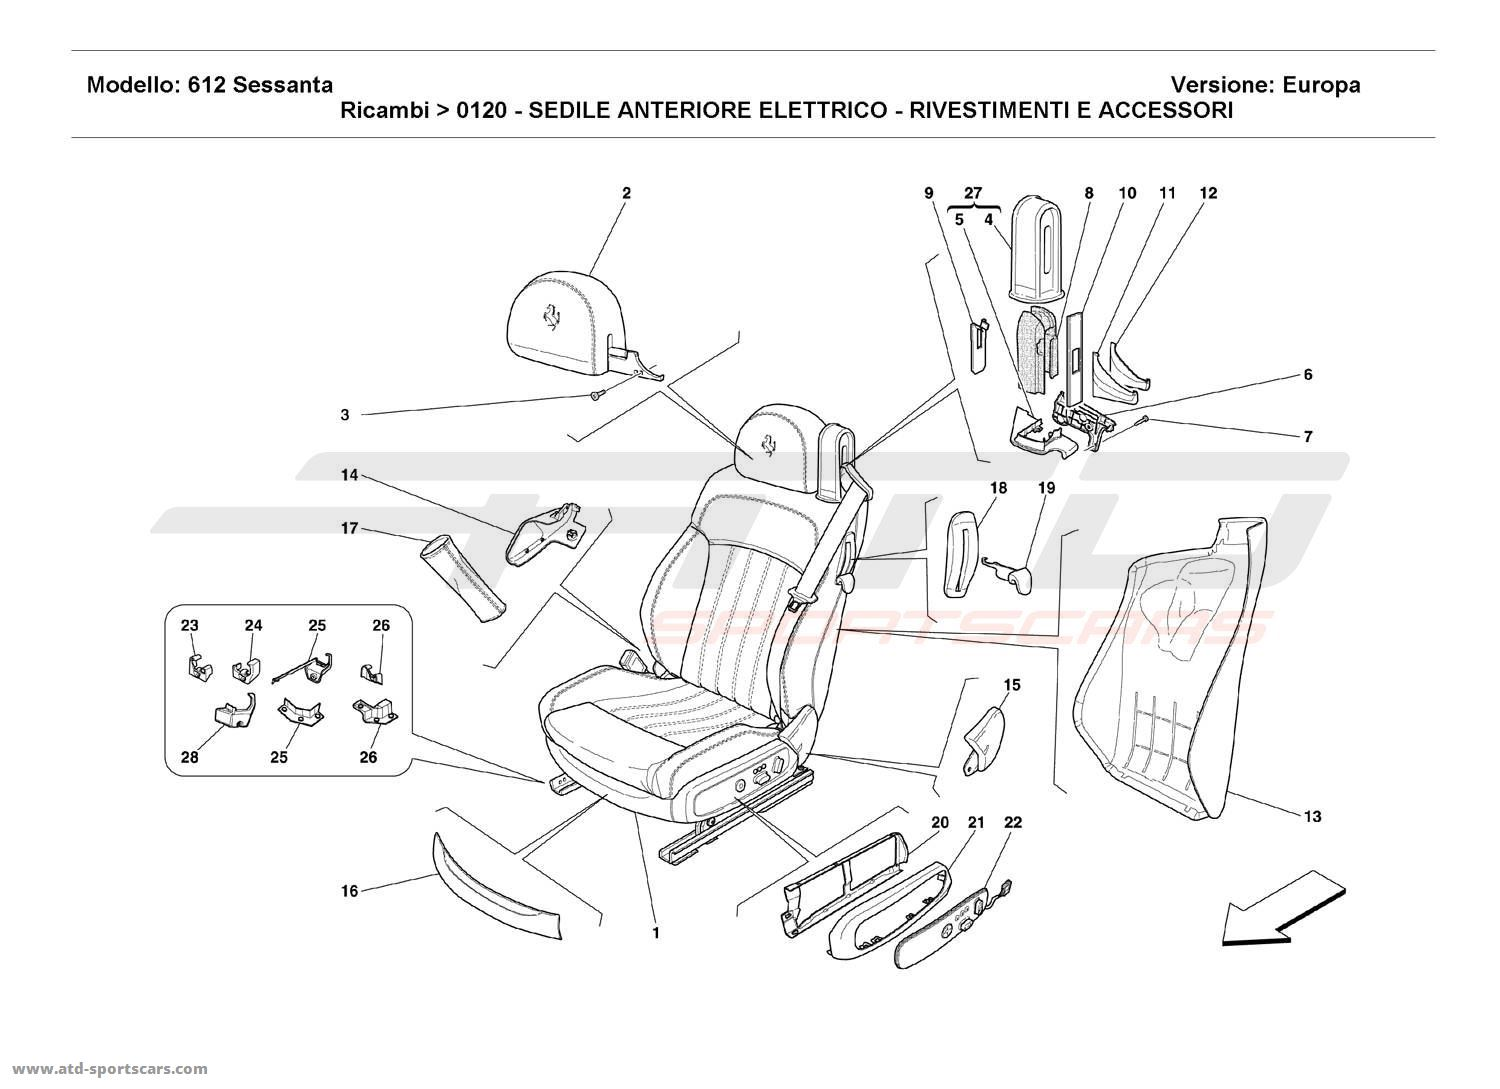 Ferrari 612 Sessanta ELECTRICAL FRONT SEAT - COVERINGS AND ACCESSORIES